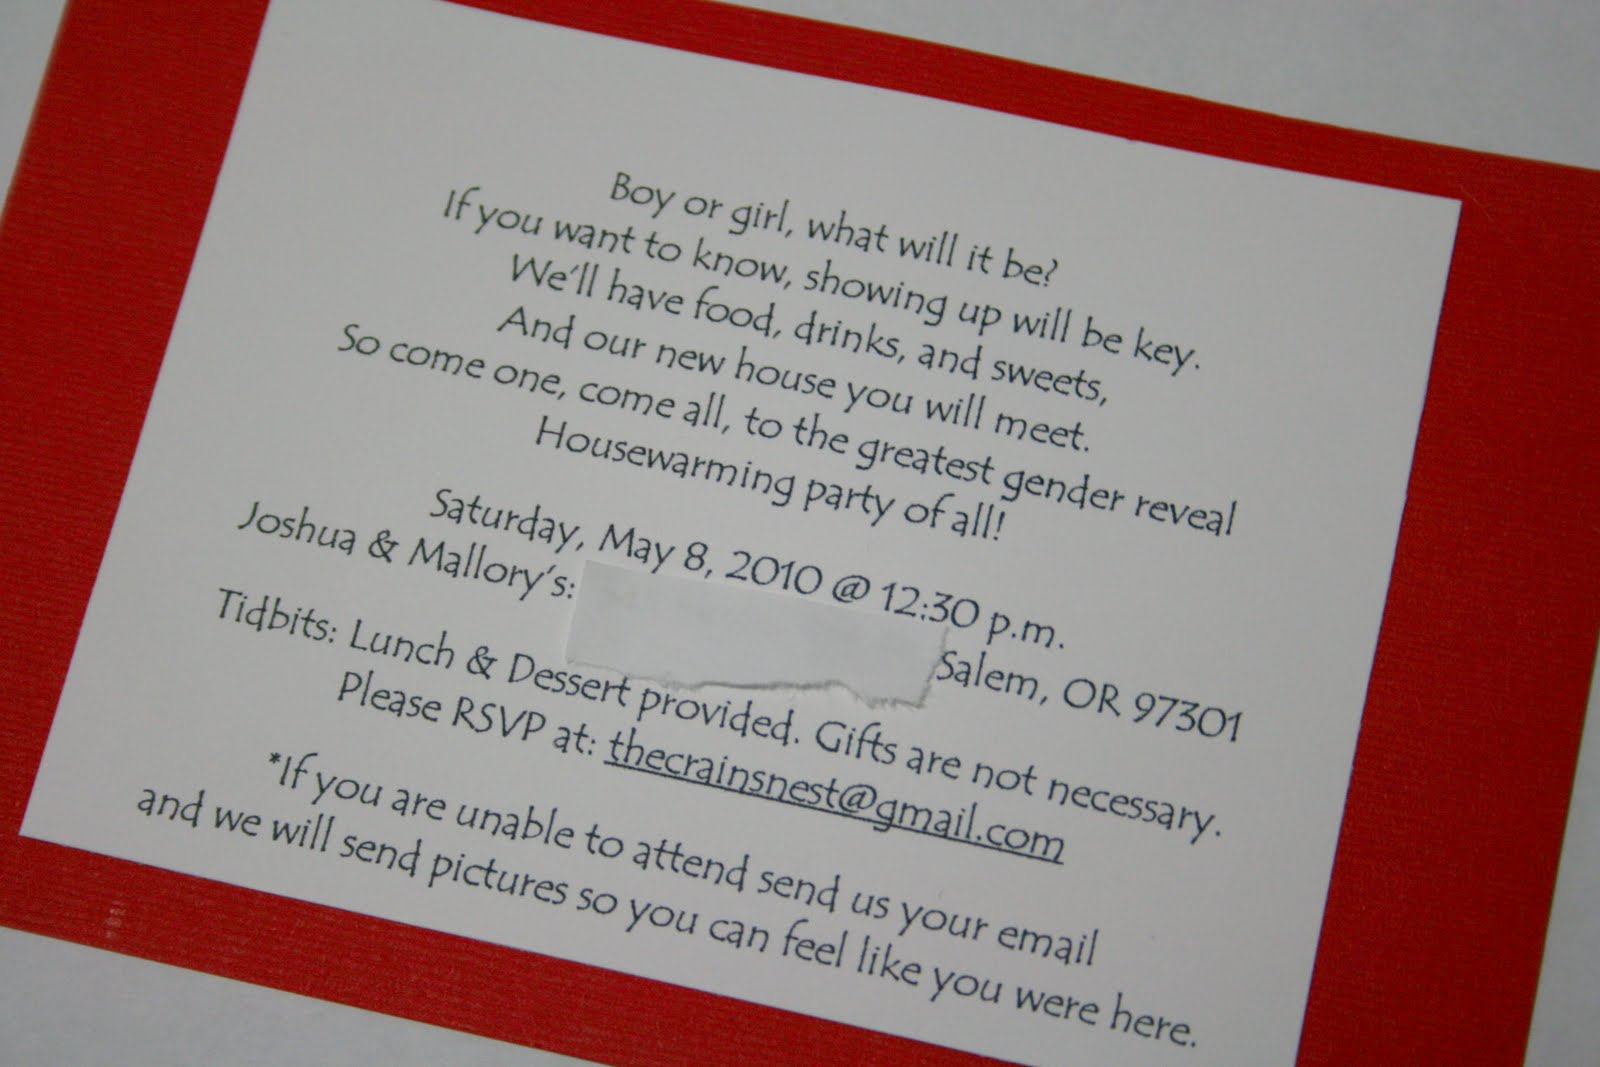 Housewarming Template Invitation with awesome invitations design